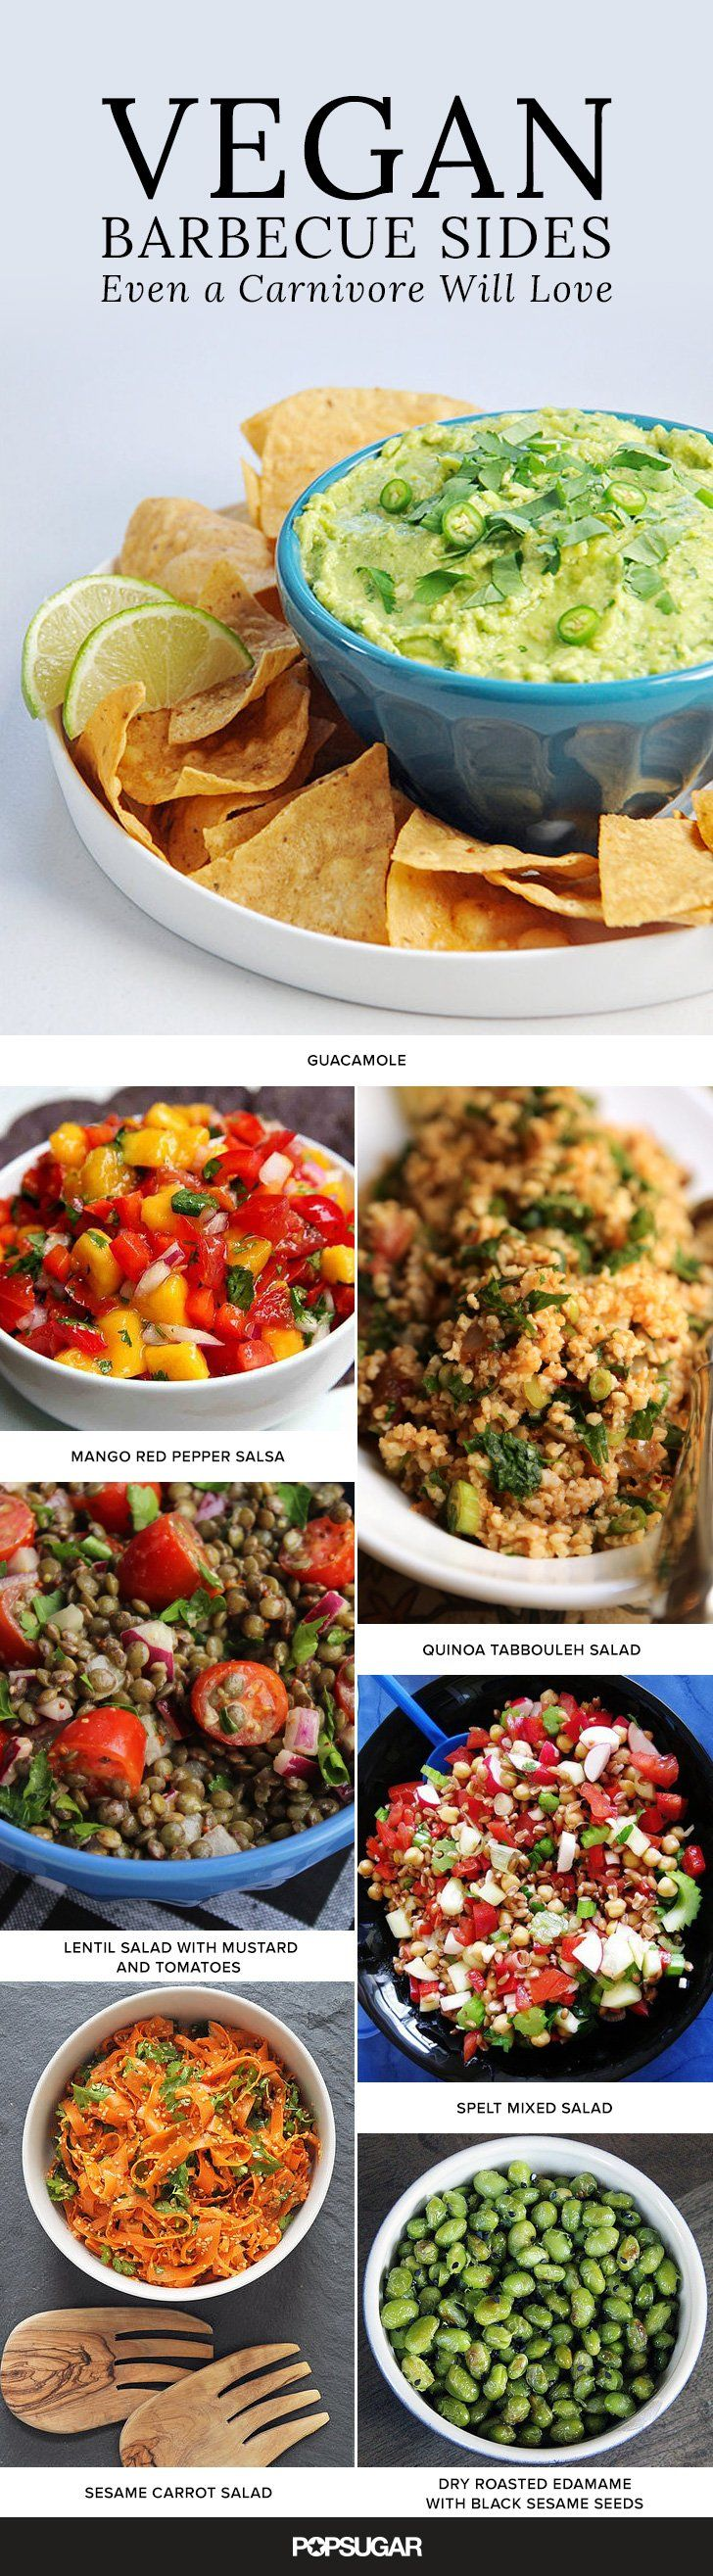 31 Vegan Barbecue Sides That Will Definitely Impress Meat Eaters